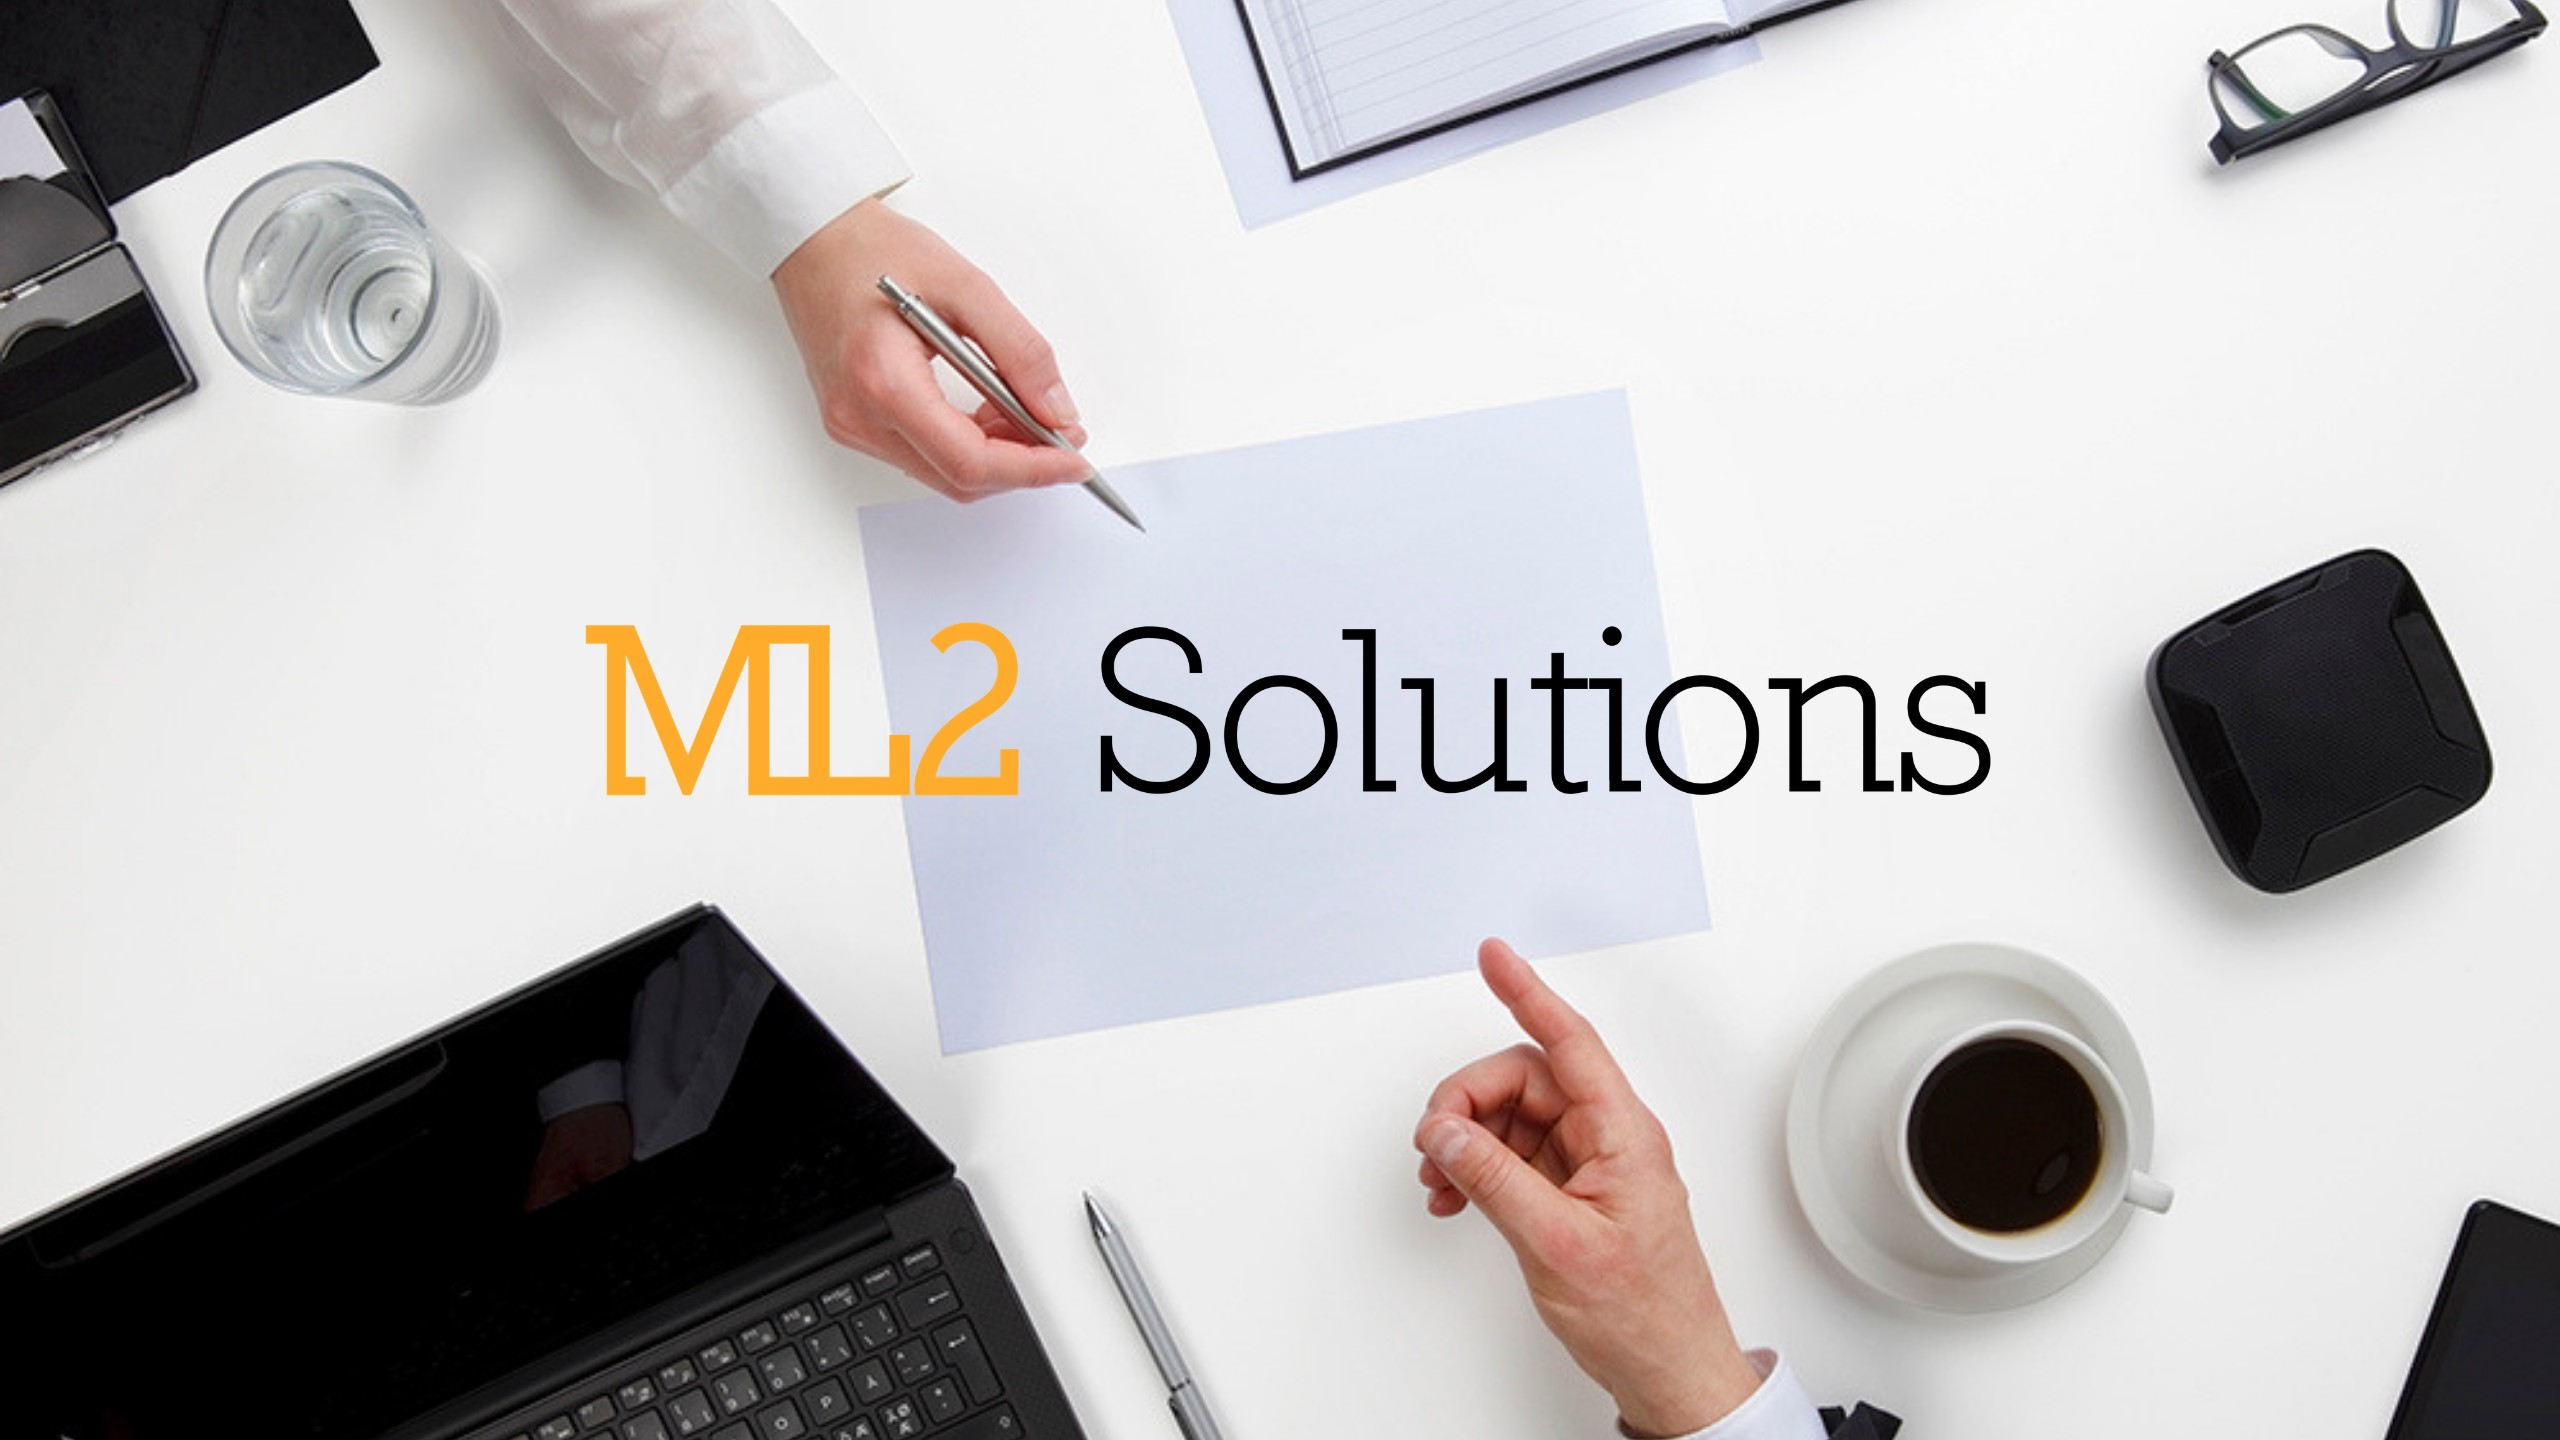 ML2 Solutions